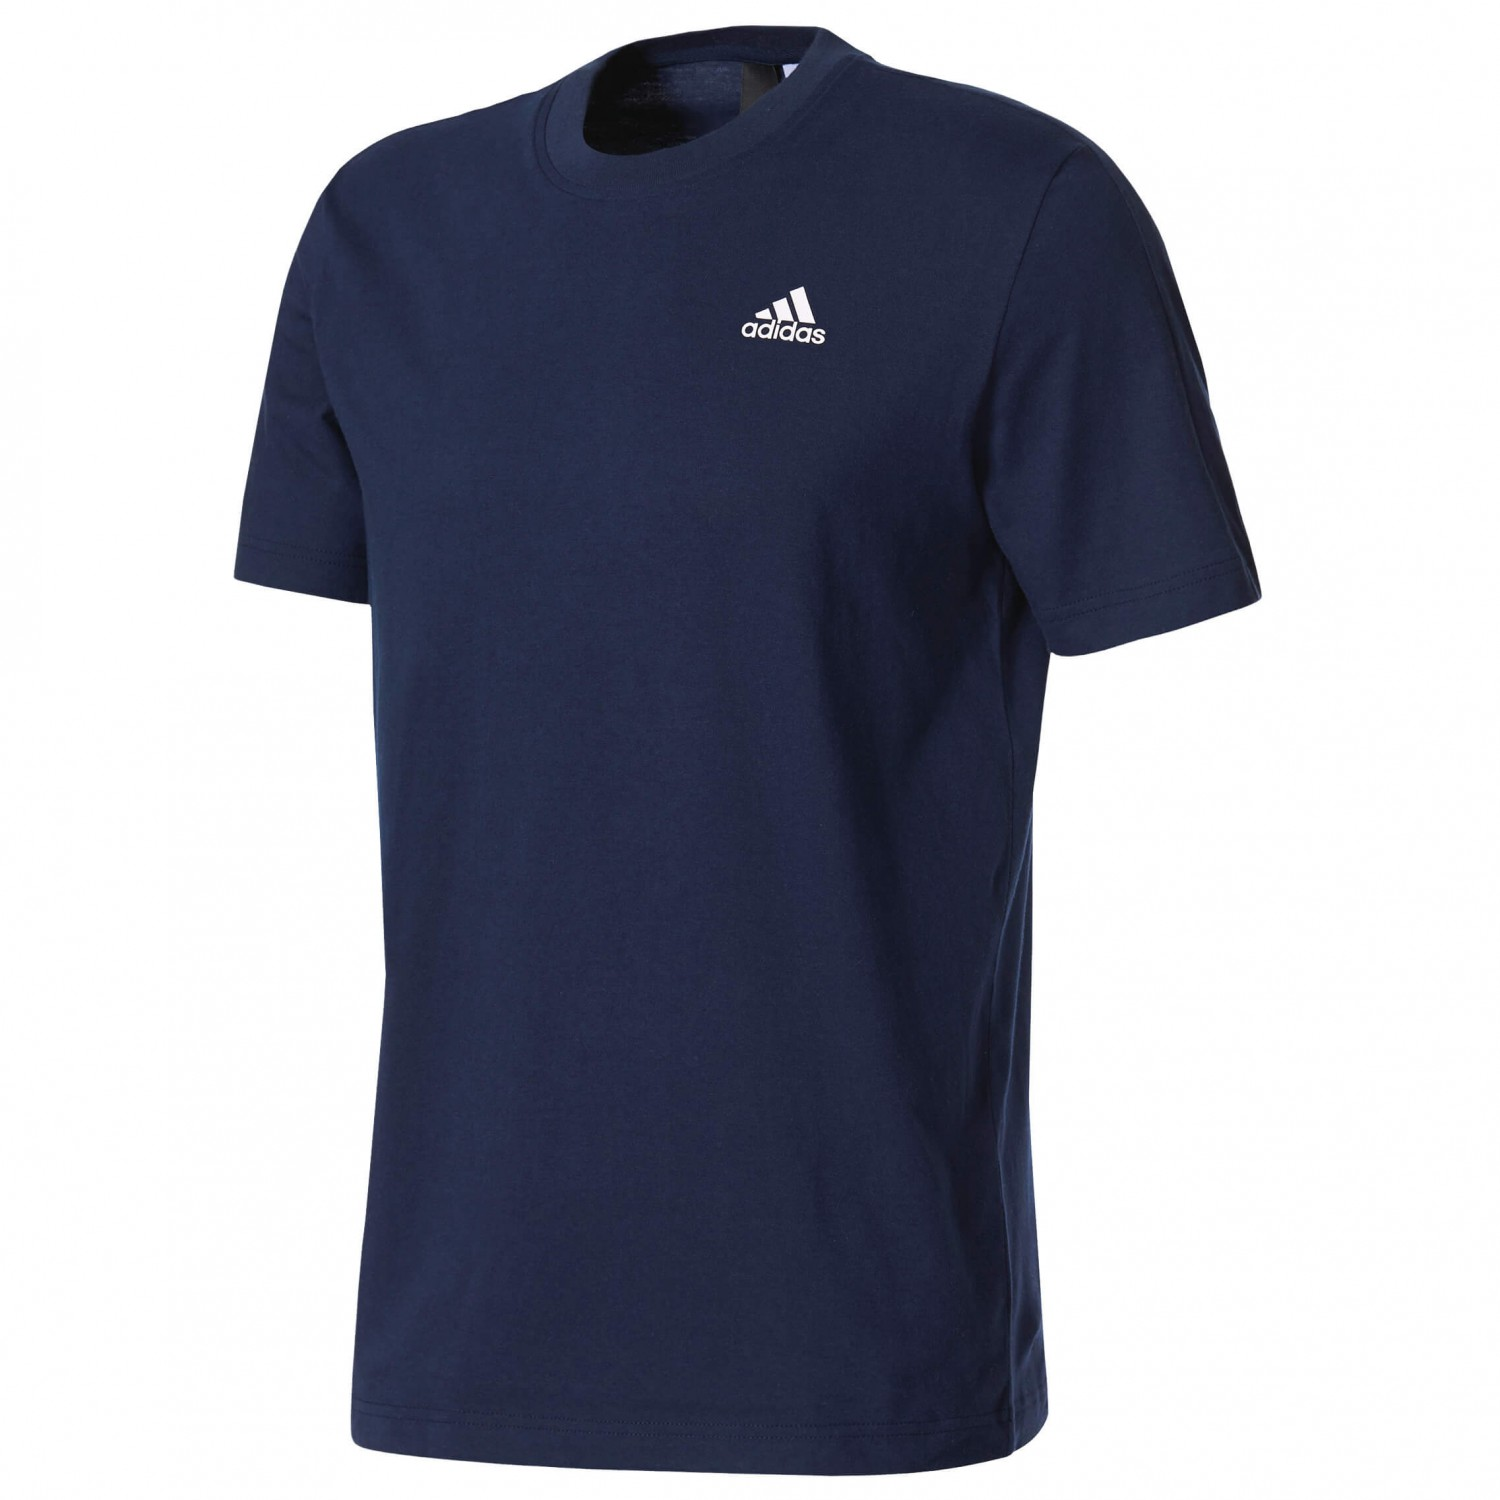 adidas essentials base tee t shirt herren online kaufen. Black Bedroom Furniture Sets. Home Design Ideas